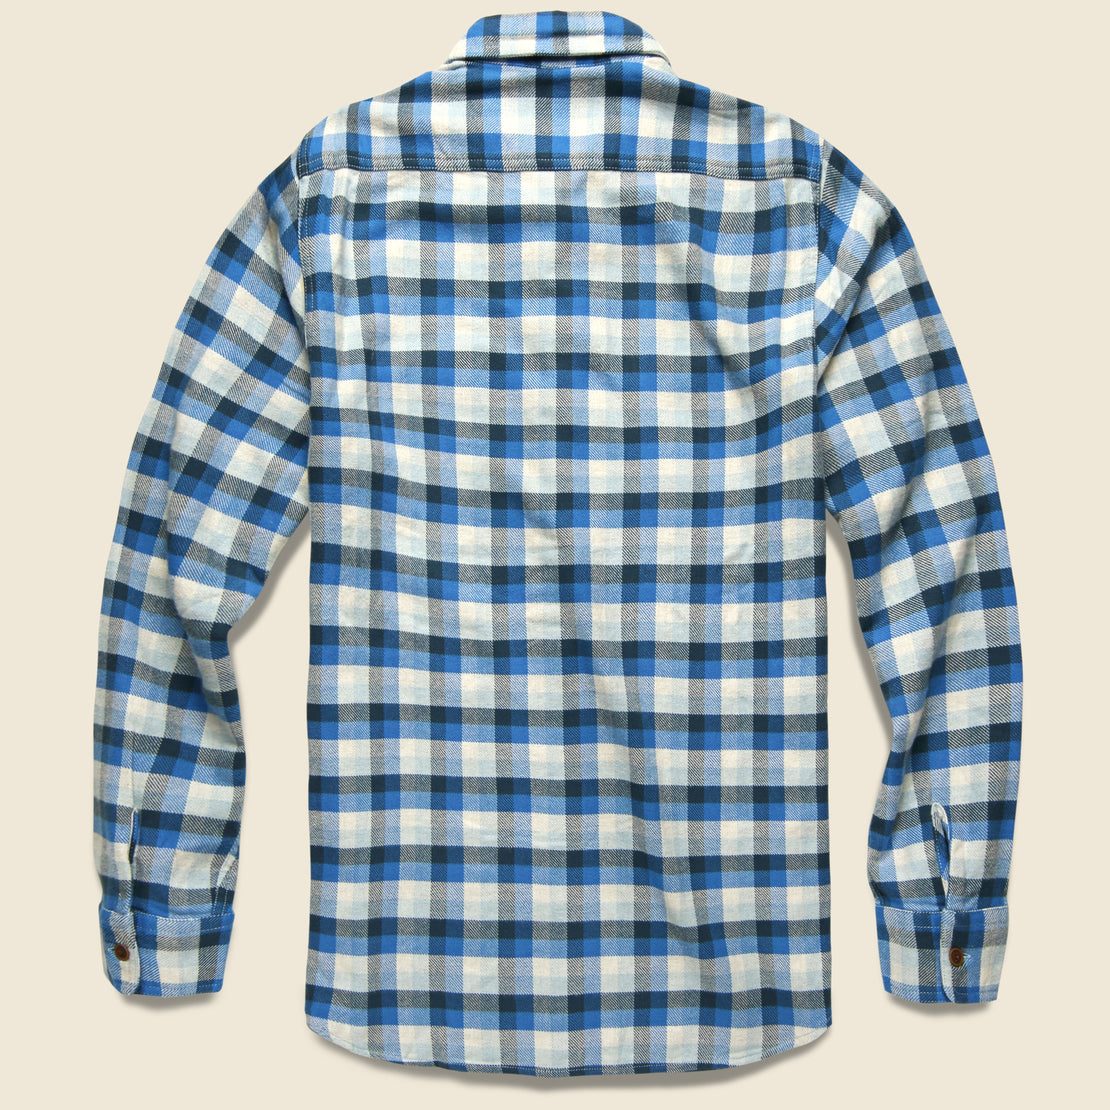 Gingham Heritage Flannel - Navy/Blue/Grey